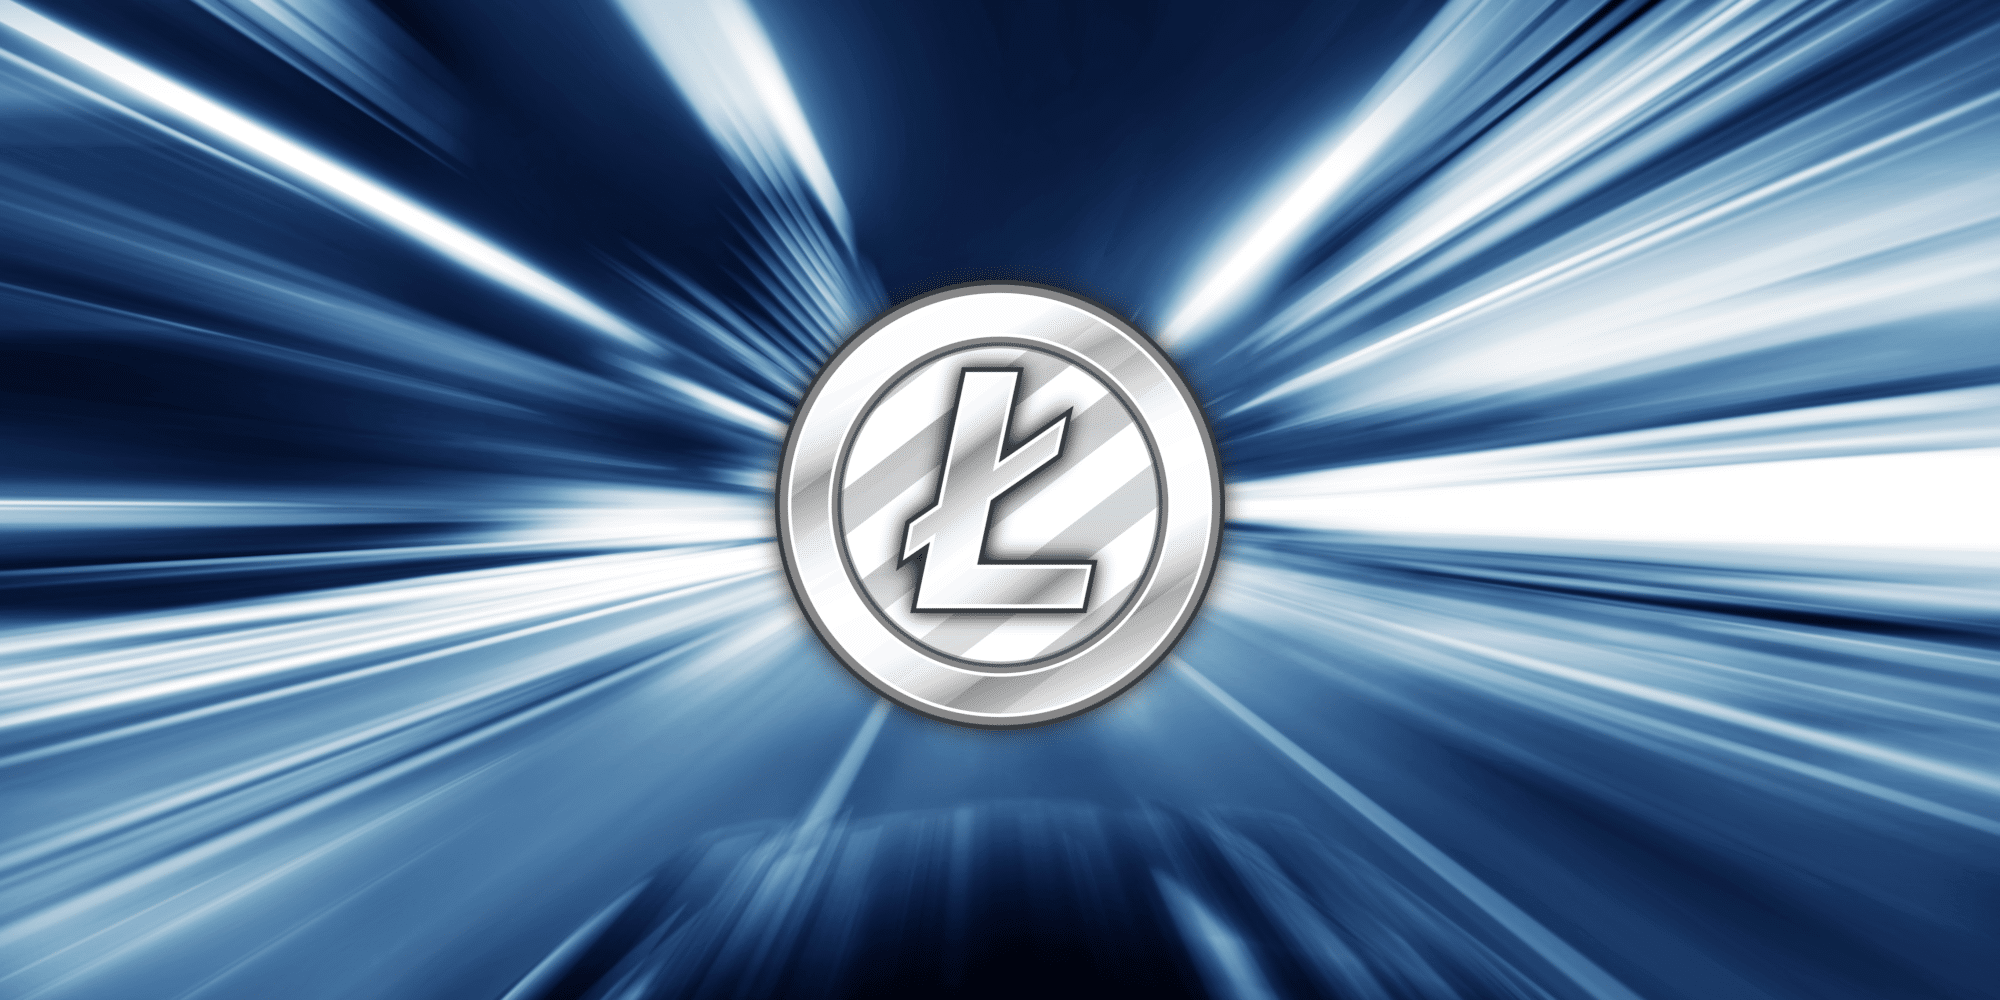 https://www.crypto-advice.com/images/uploads/1511184885_8be1113786b5d658880fcbedad35333d_litecoin-криптовалута.png